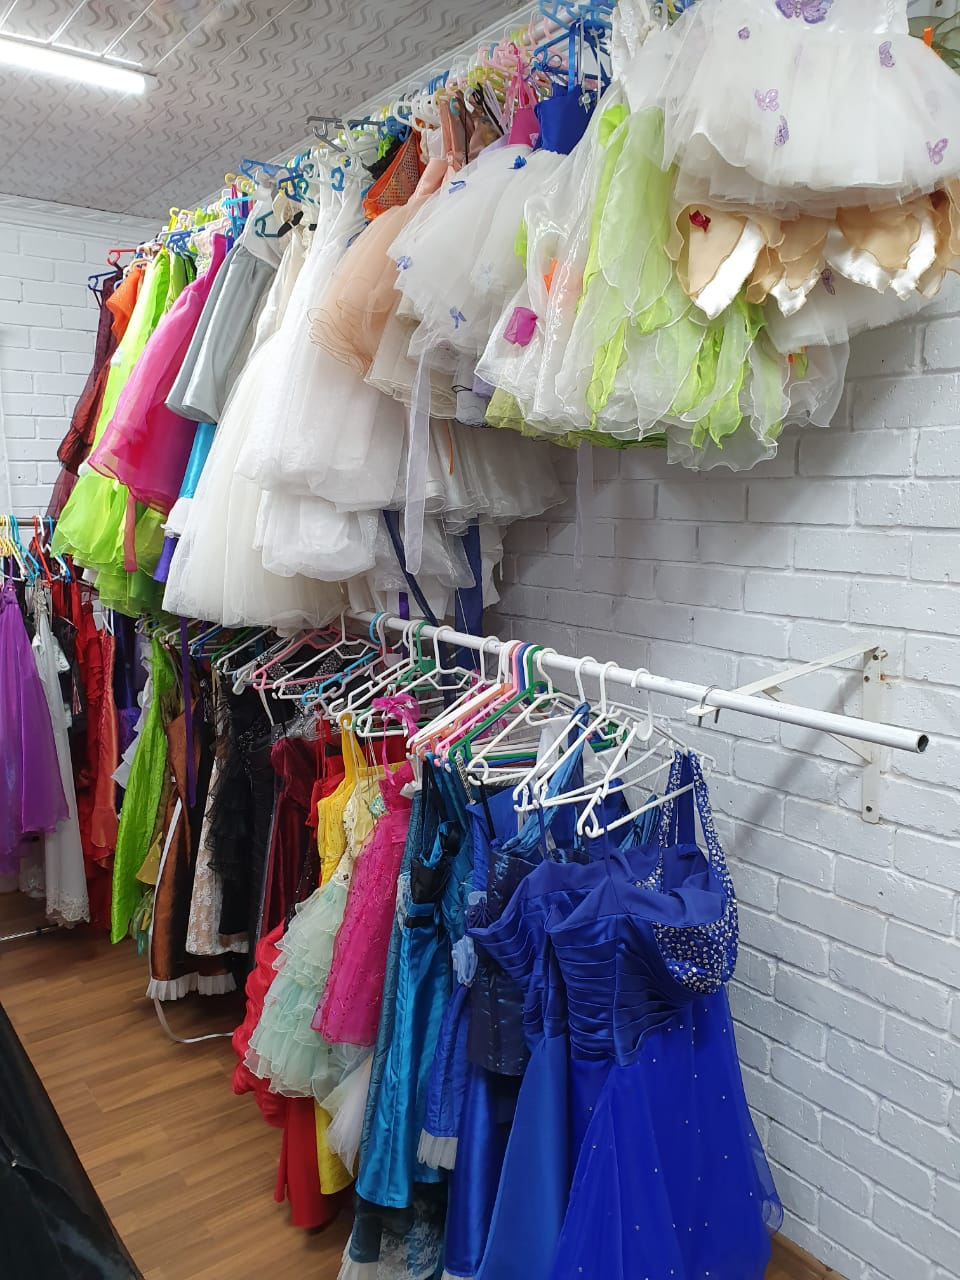 Clothing for sale, wedding dresses, evening dresses, party dresses, kids clothing and dresses, men suits, shirts, ties, jewelry, crystals etc etc